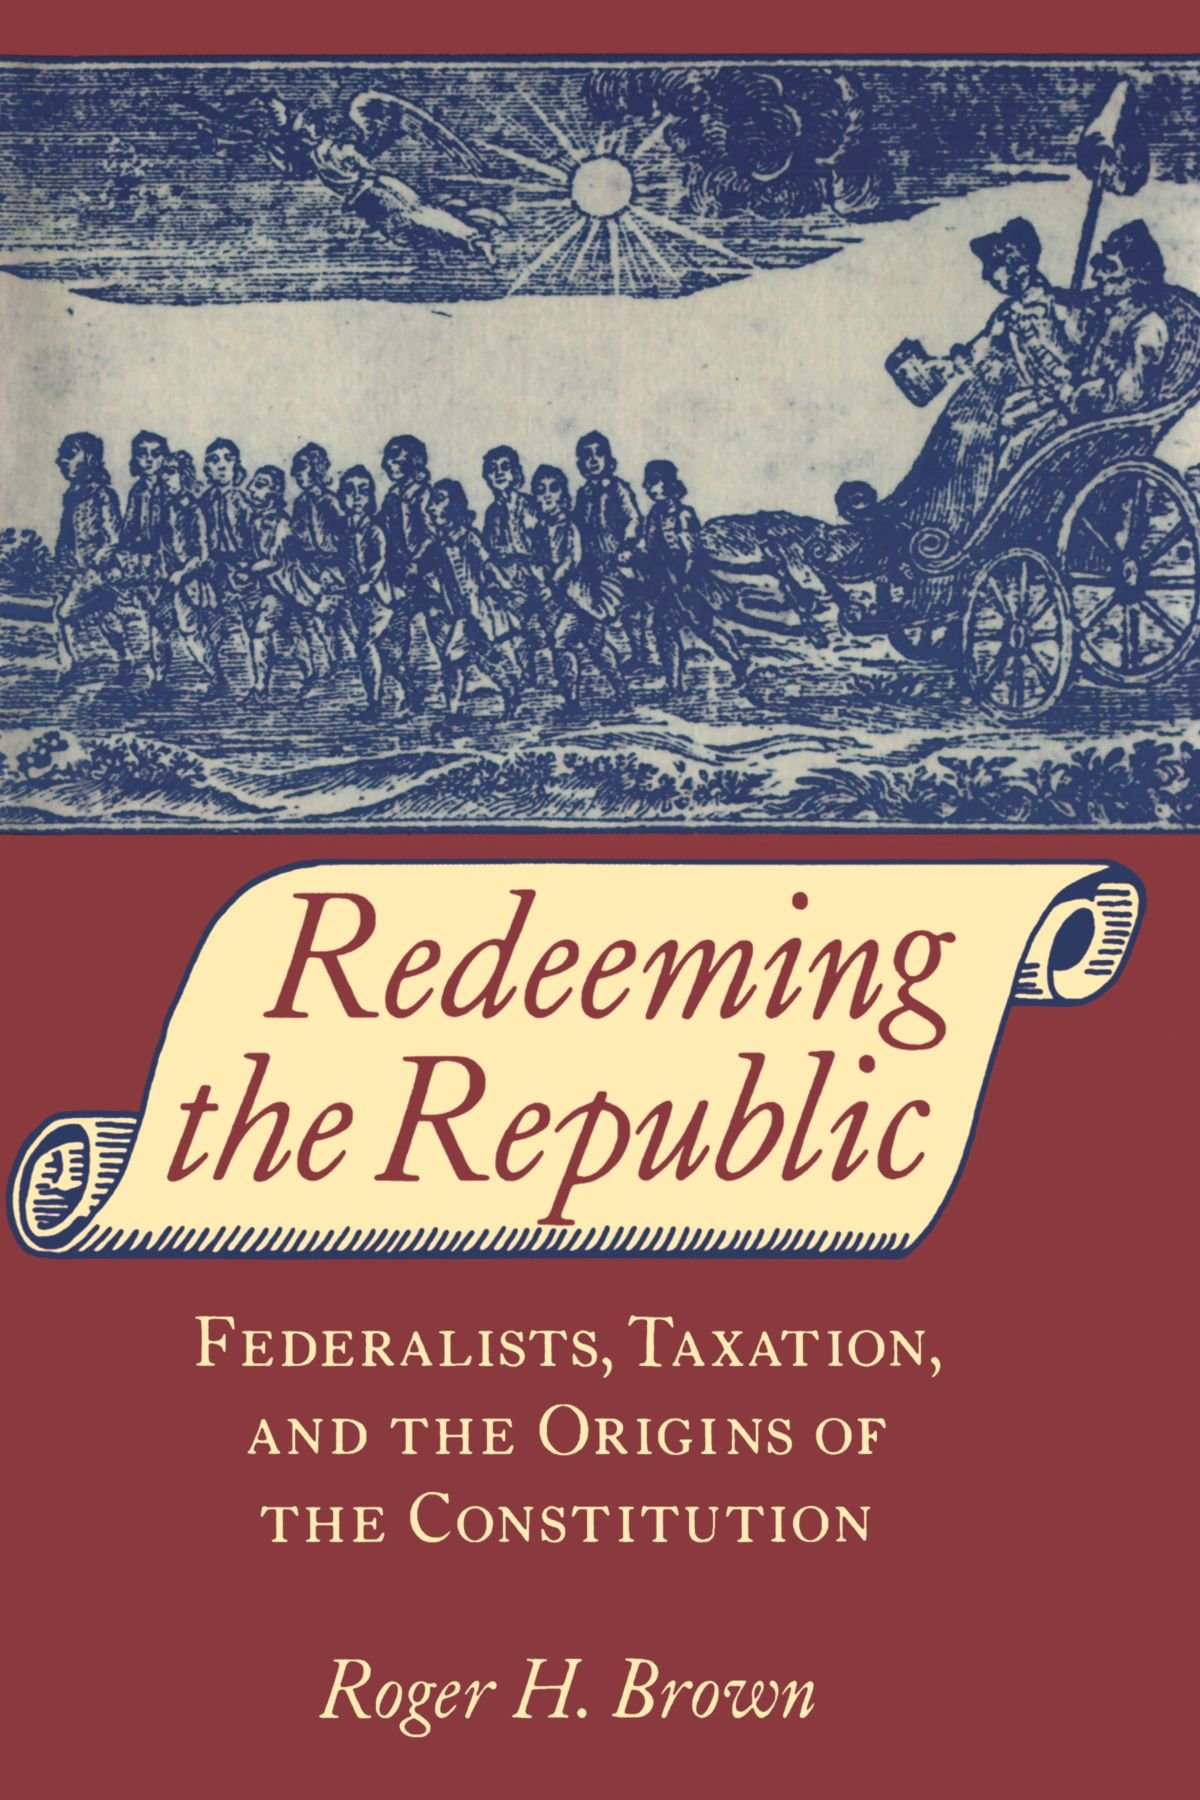 Redeeming the Republic: Federalists, Taxation, and the Origins of the  Constitution: Roger H. Brown: 9780801863554: Amazon.com: Books